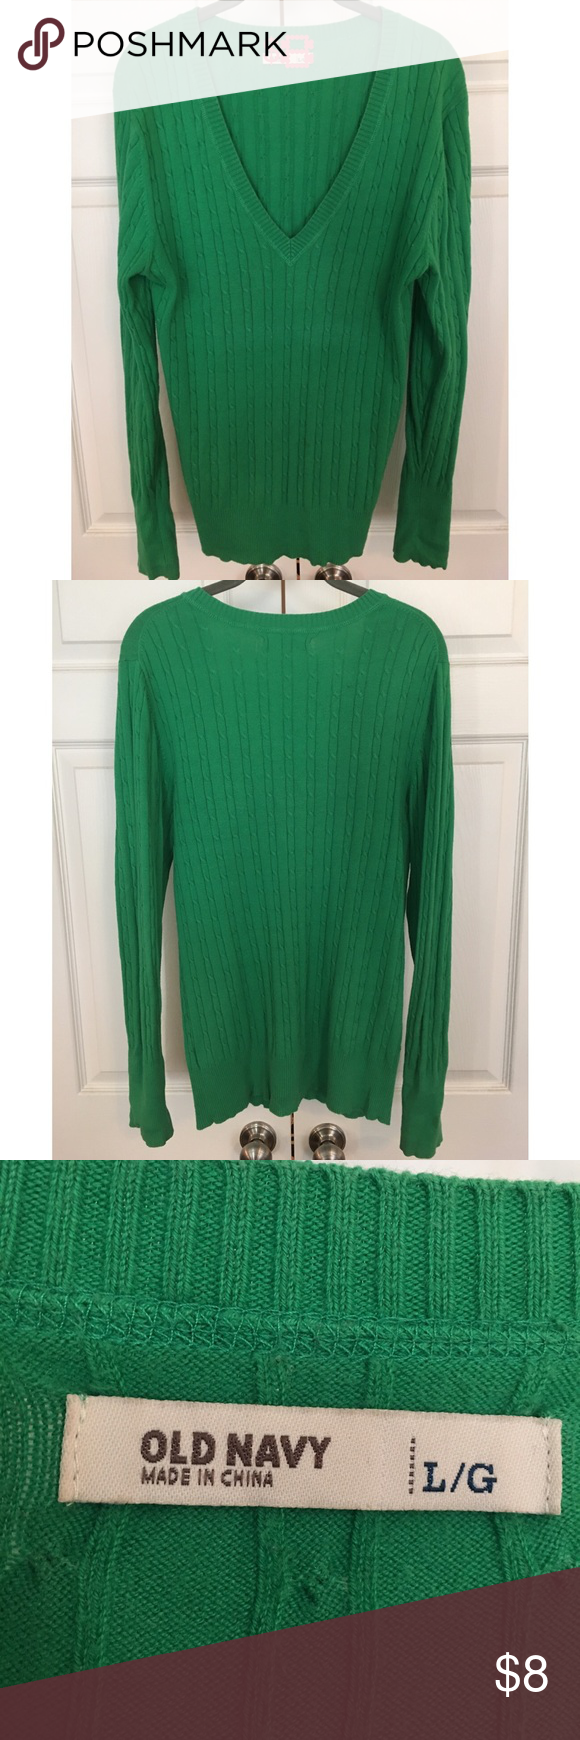 Green Cable Knit Sweater Large Old Navy Cable Knit Sweaters Navy